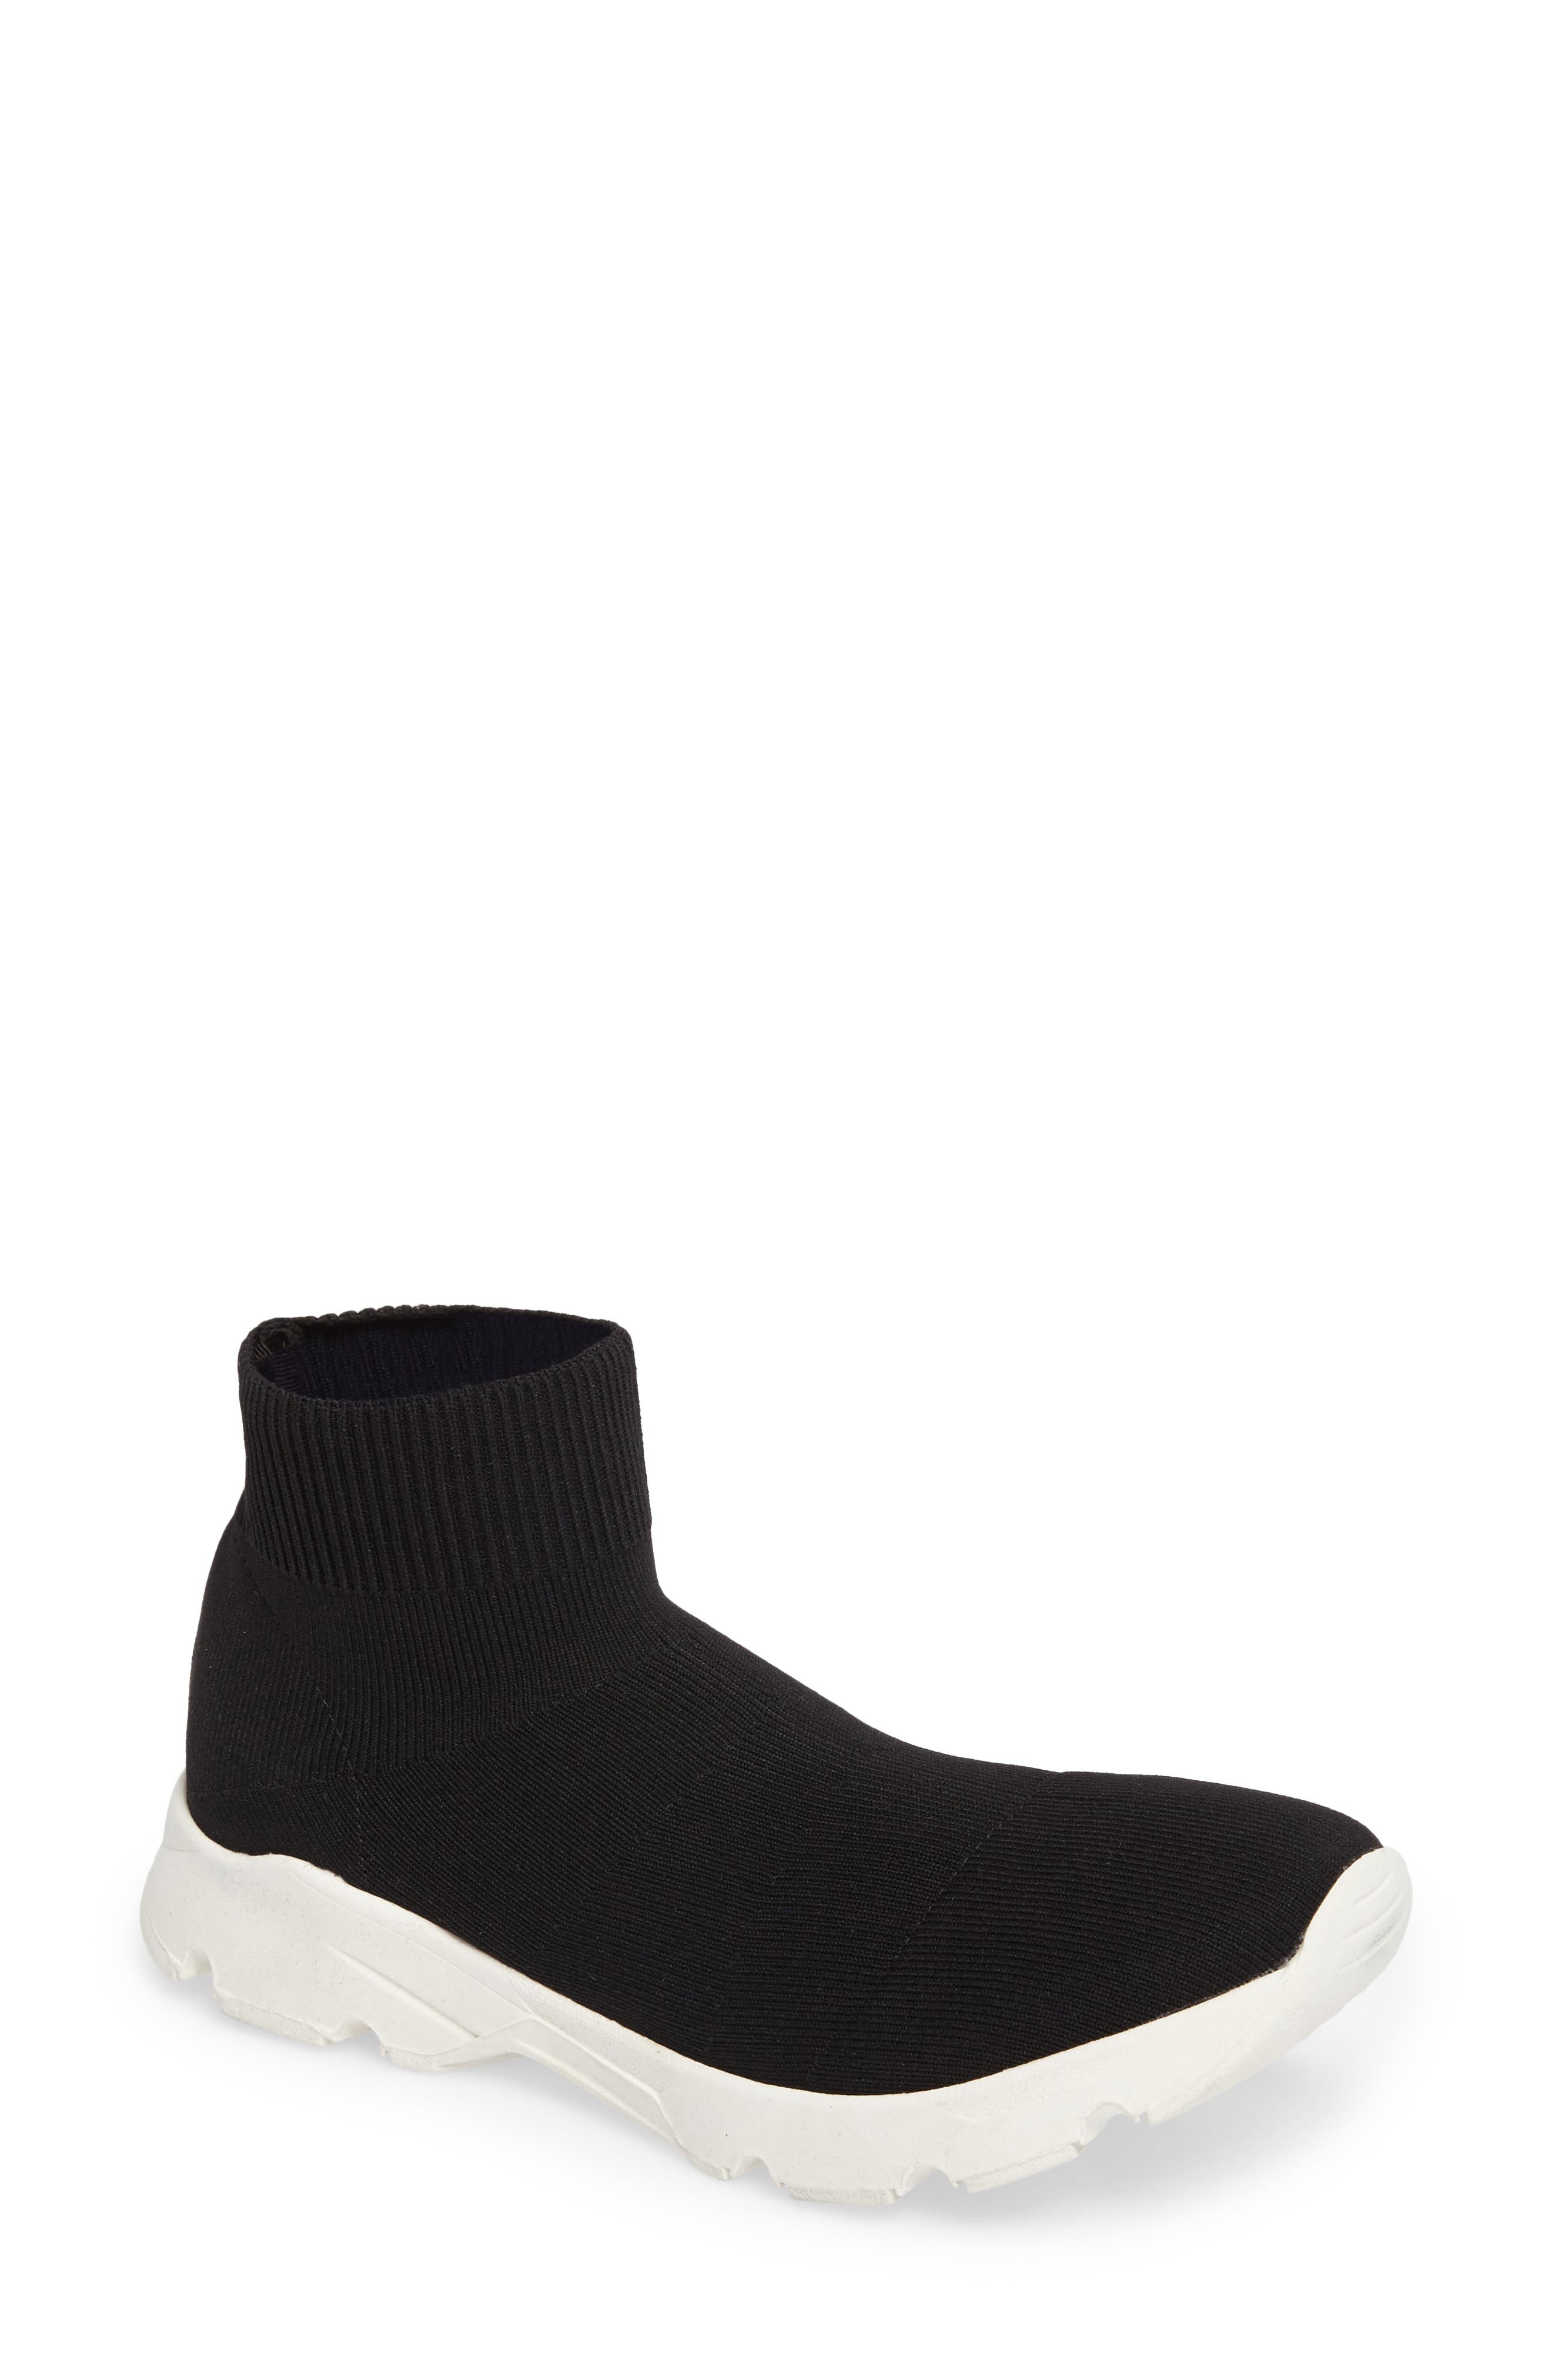 Winston Knit High Top Sneaker,                         Main,                         color, 001